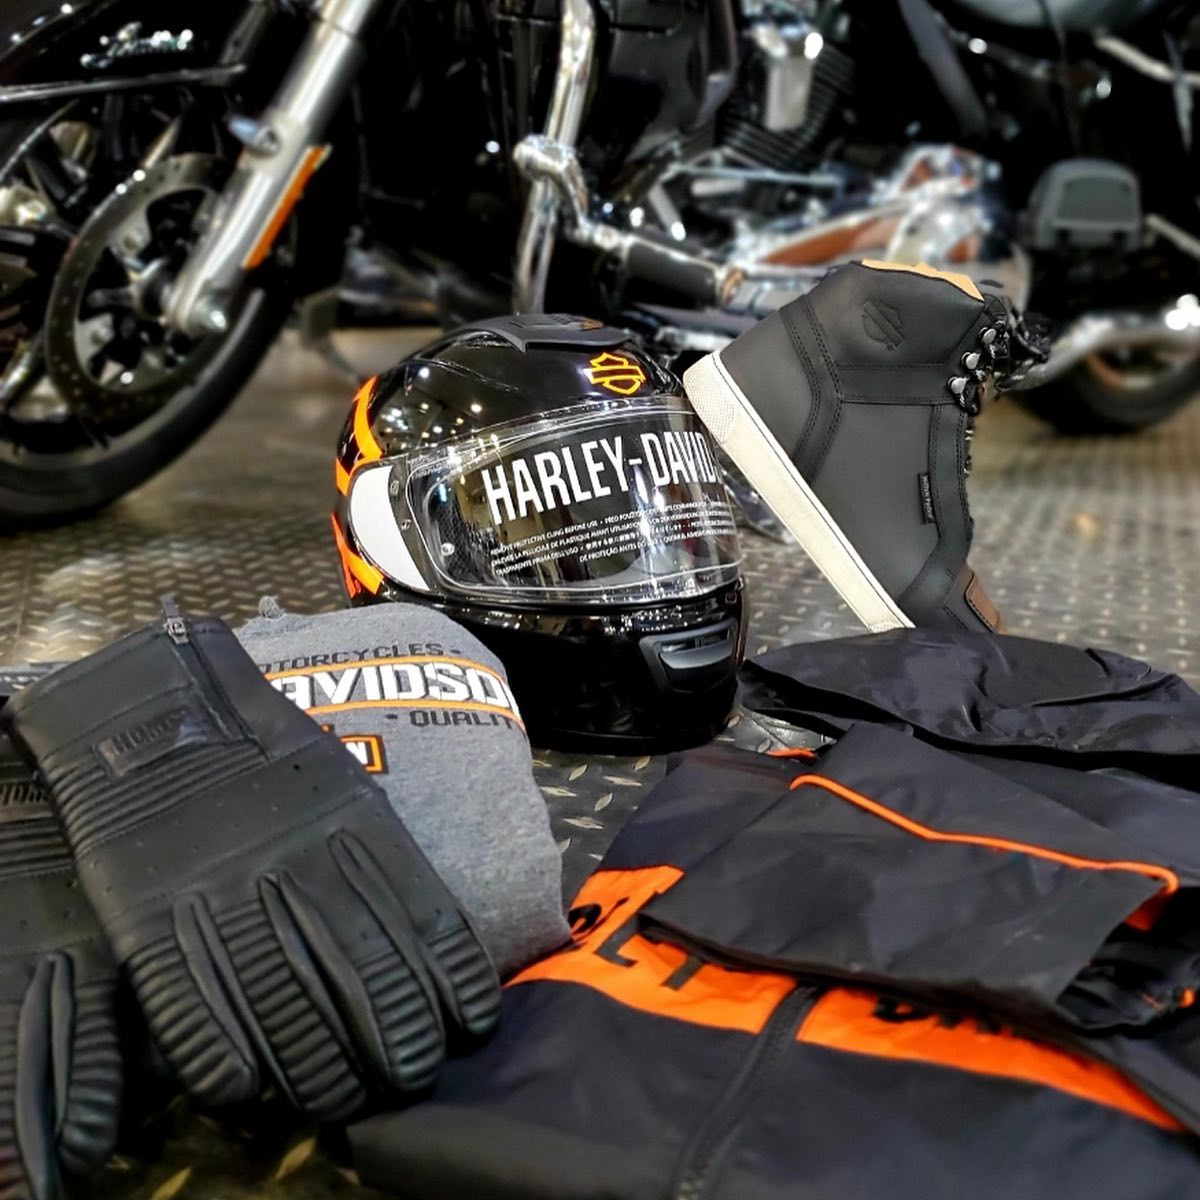 MotorClothes riding gear at Gasoline Alley Harley-Davidson